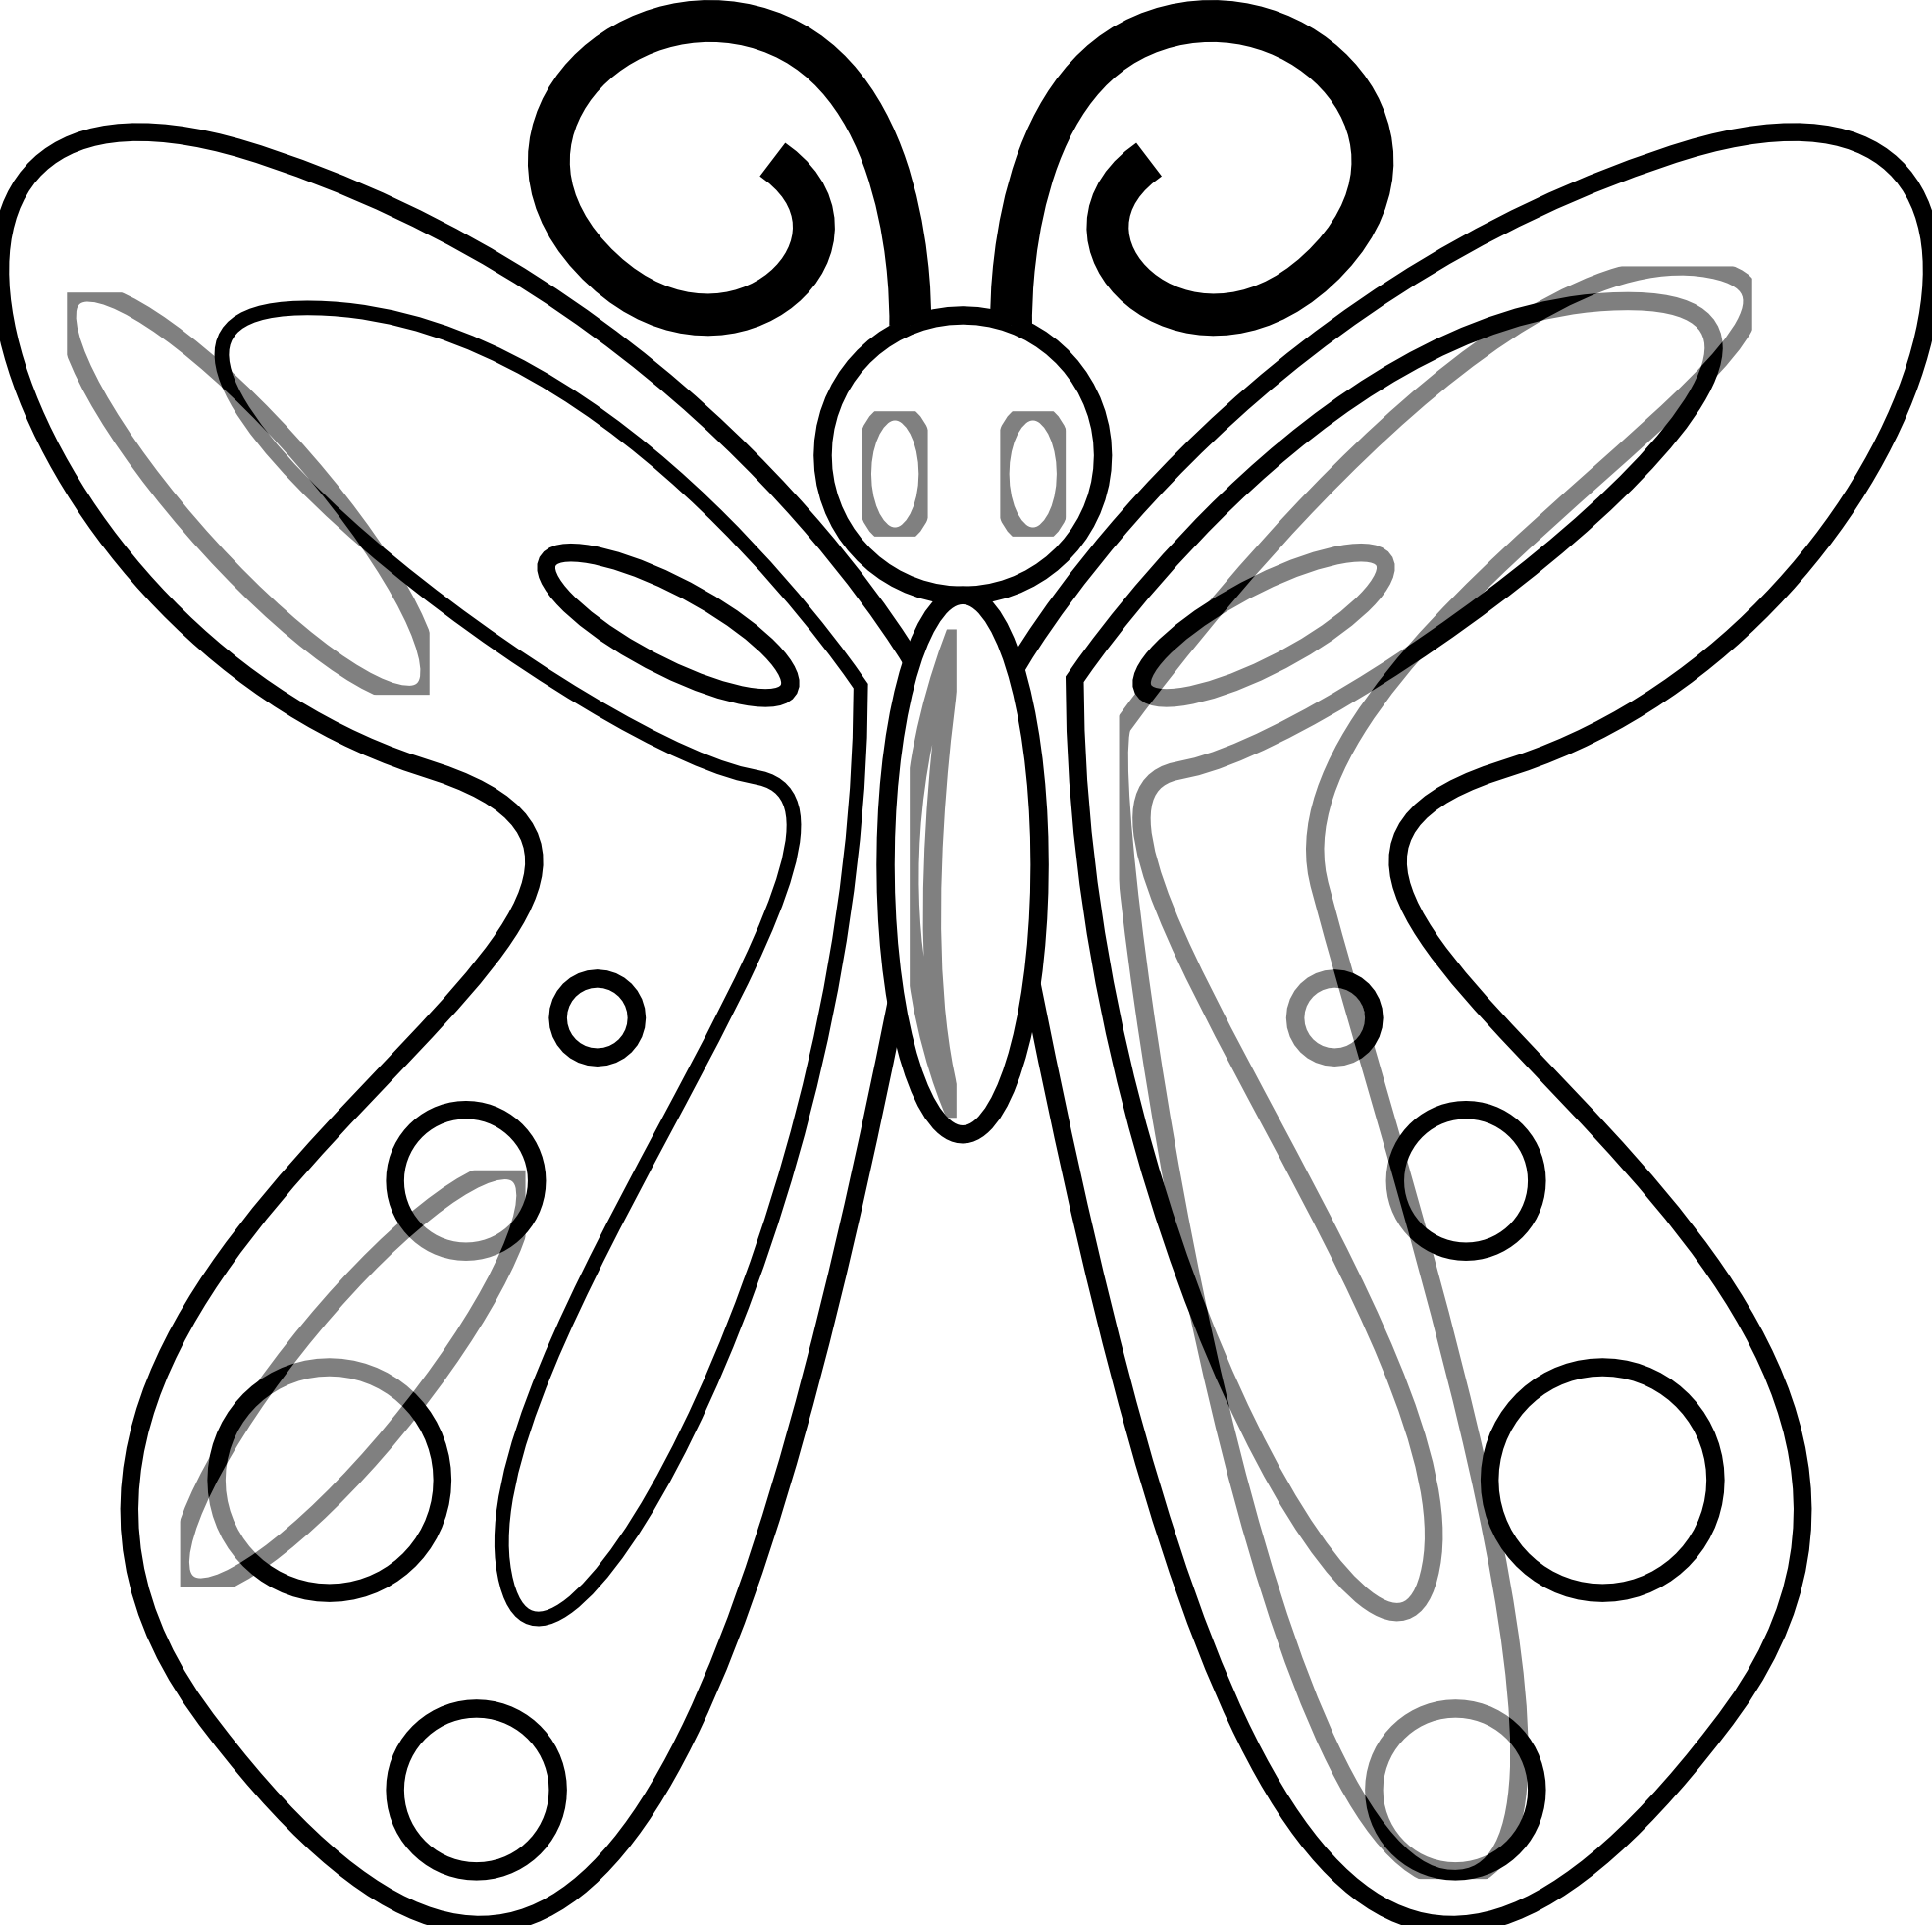 Vector Drawing Lines Worksheets : Clipart butterfly outline panda free